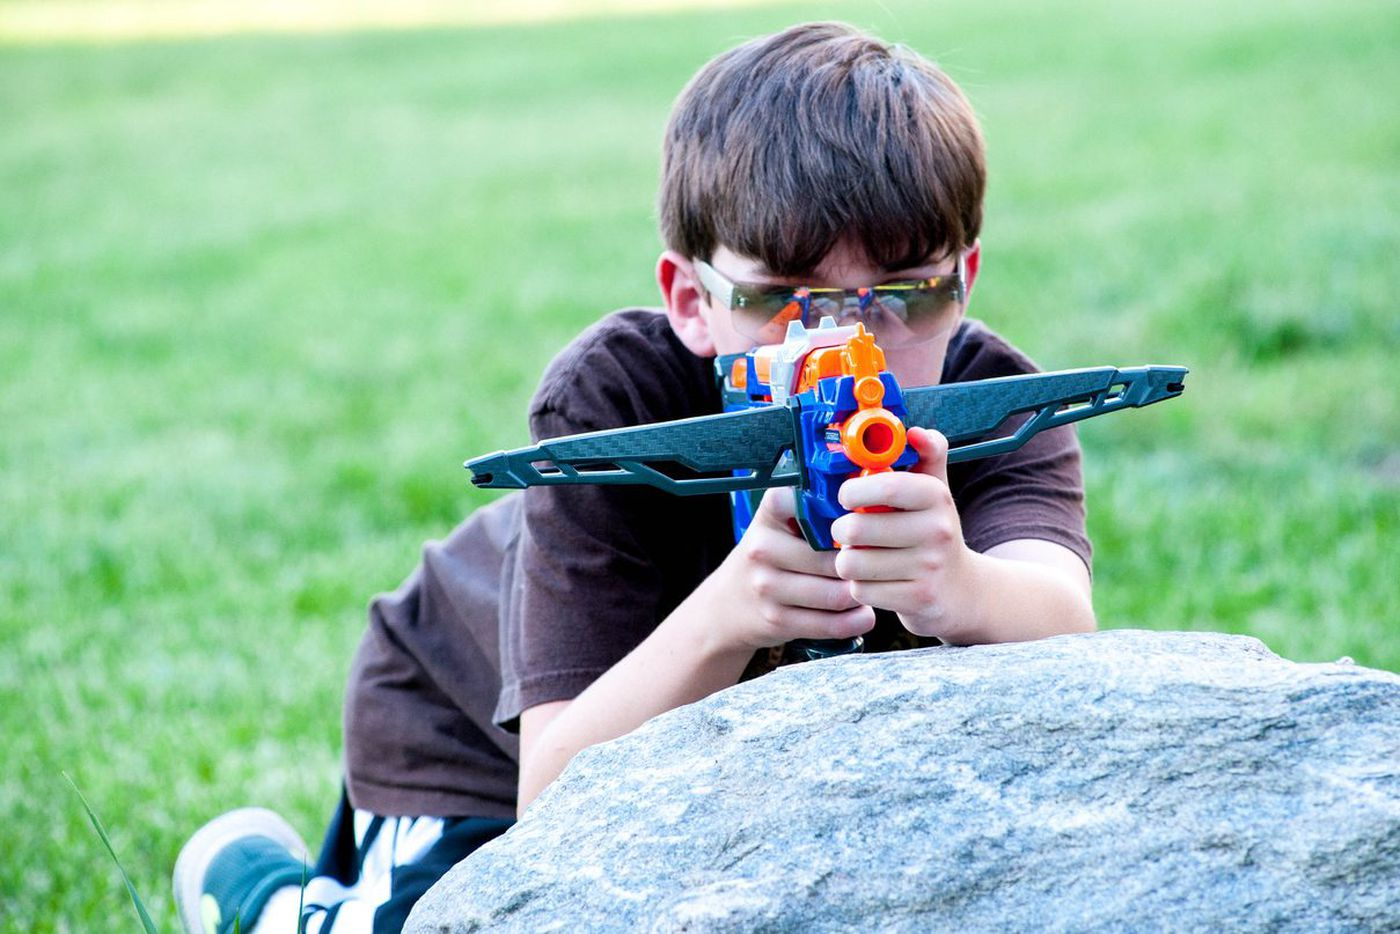 Remember eye safety when playing with projectile toys